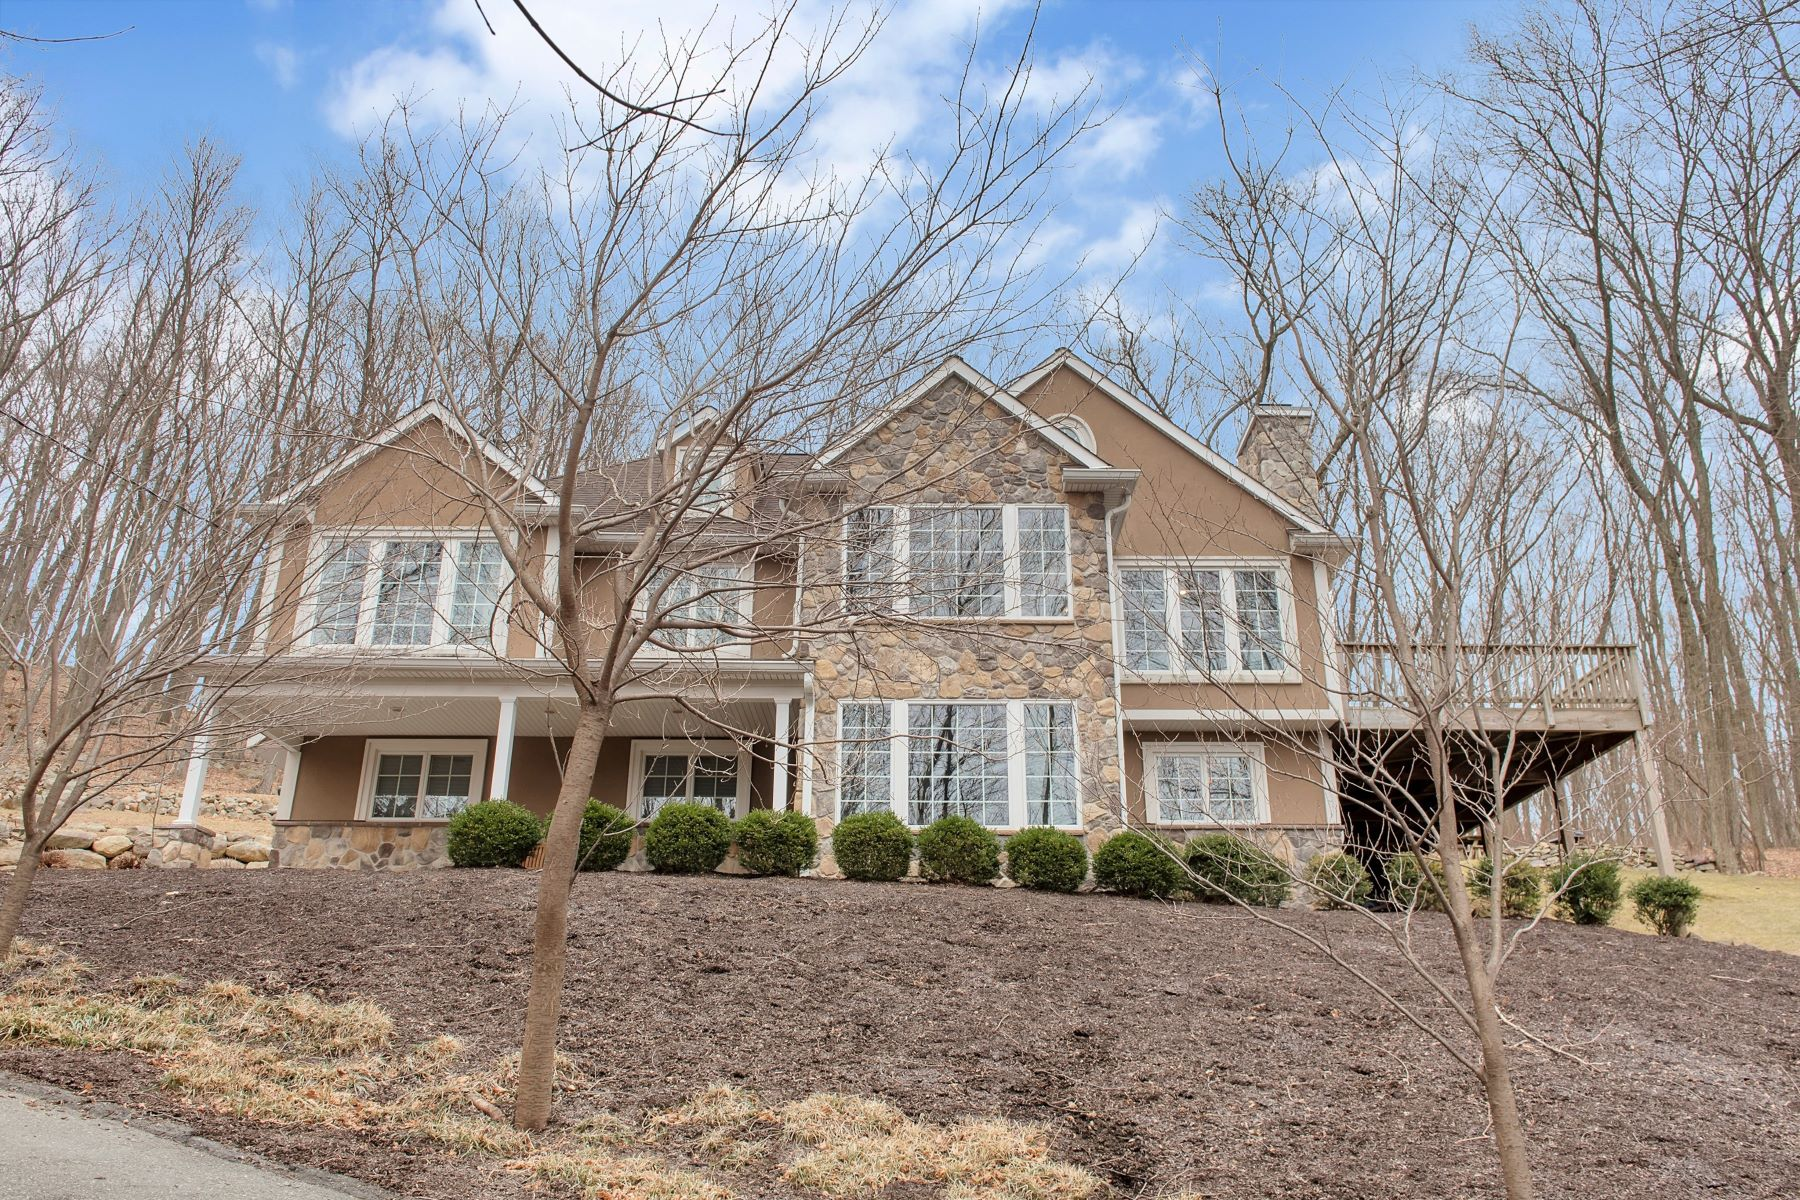 Single Family Home for Sale at Renovated Custom Home 62 Old Boonton Road, Denville, New Jersey 07834 United States